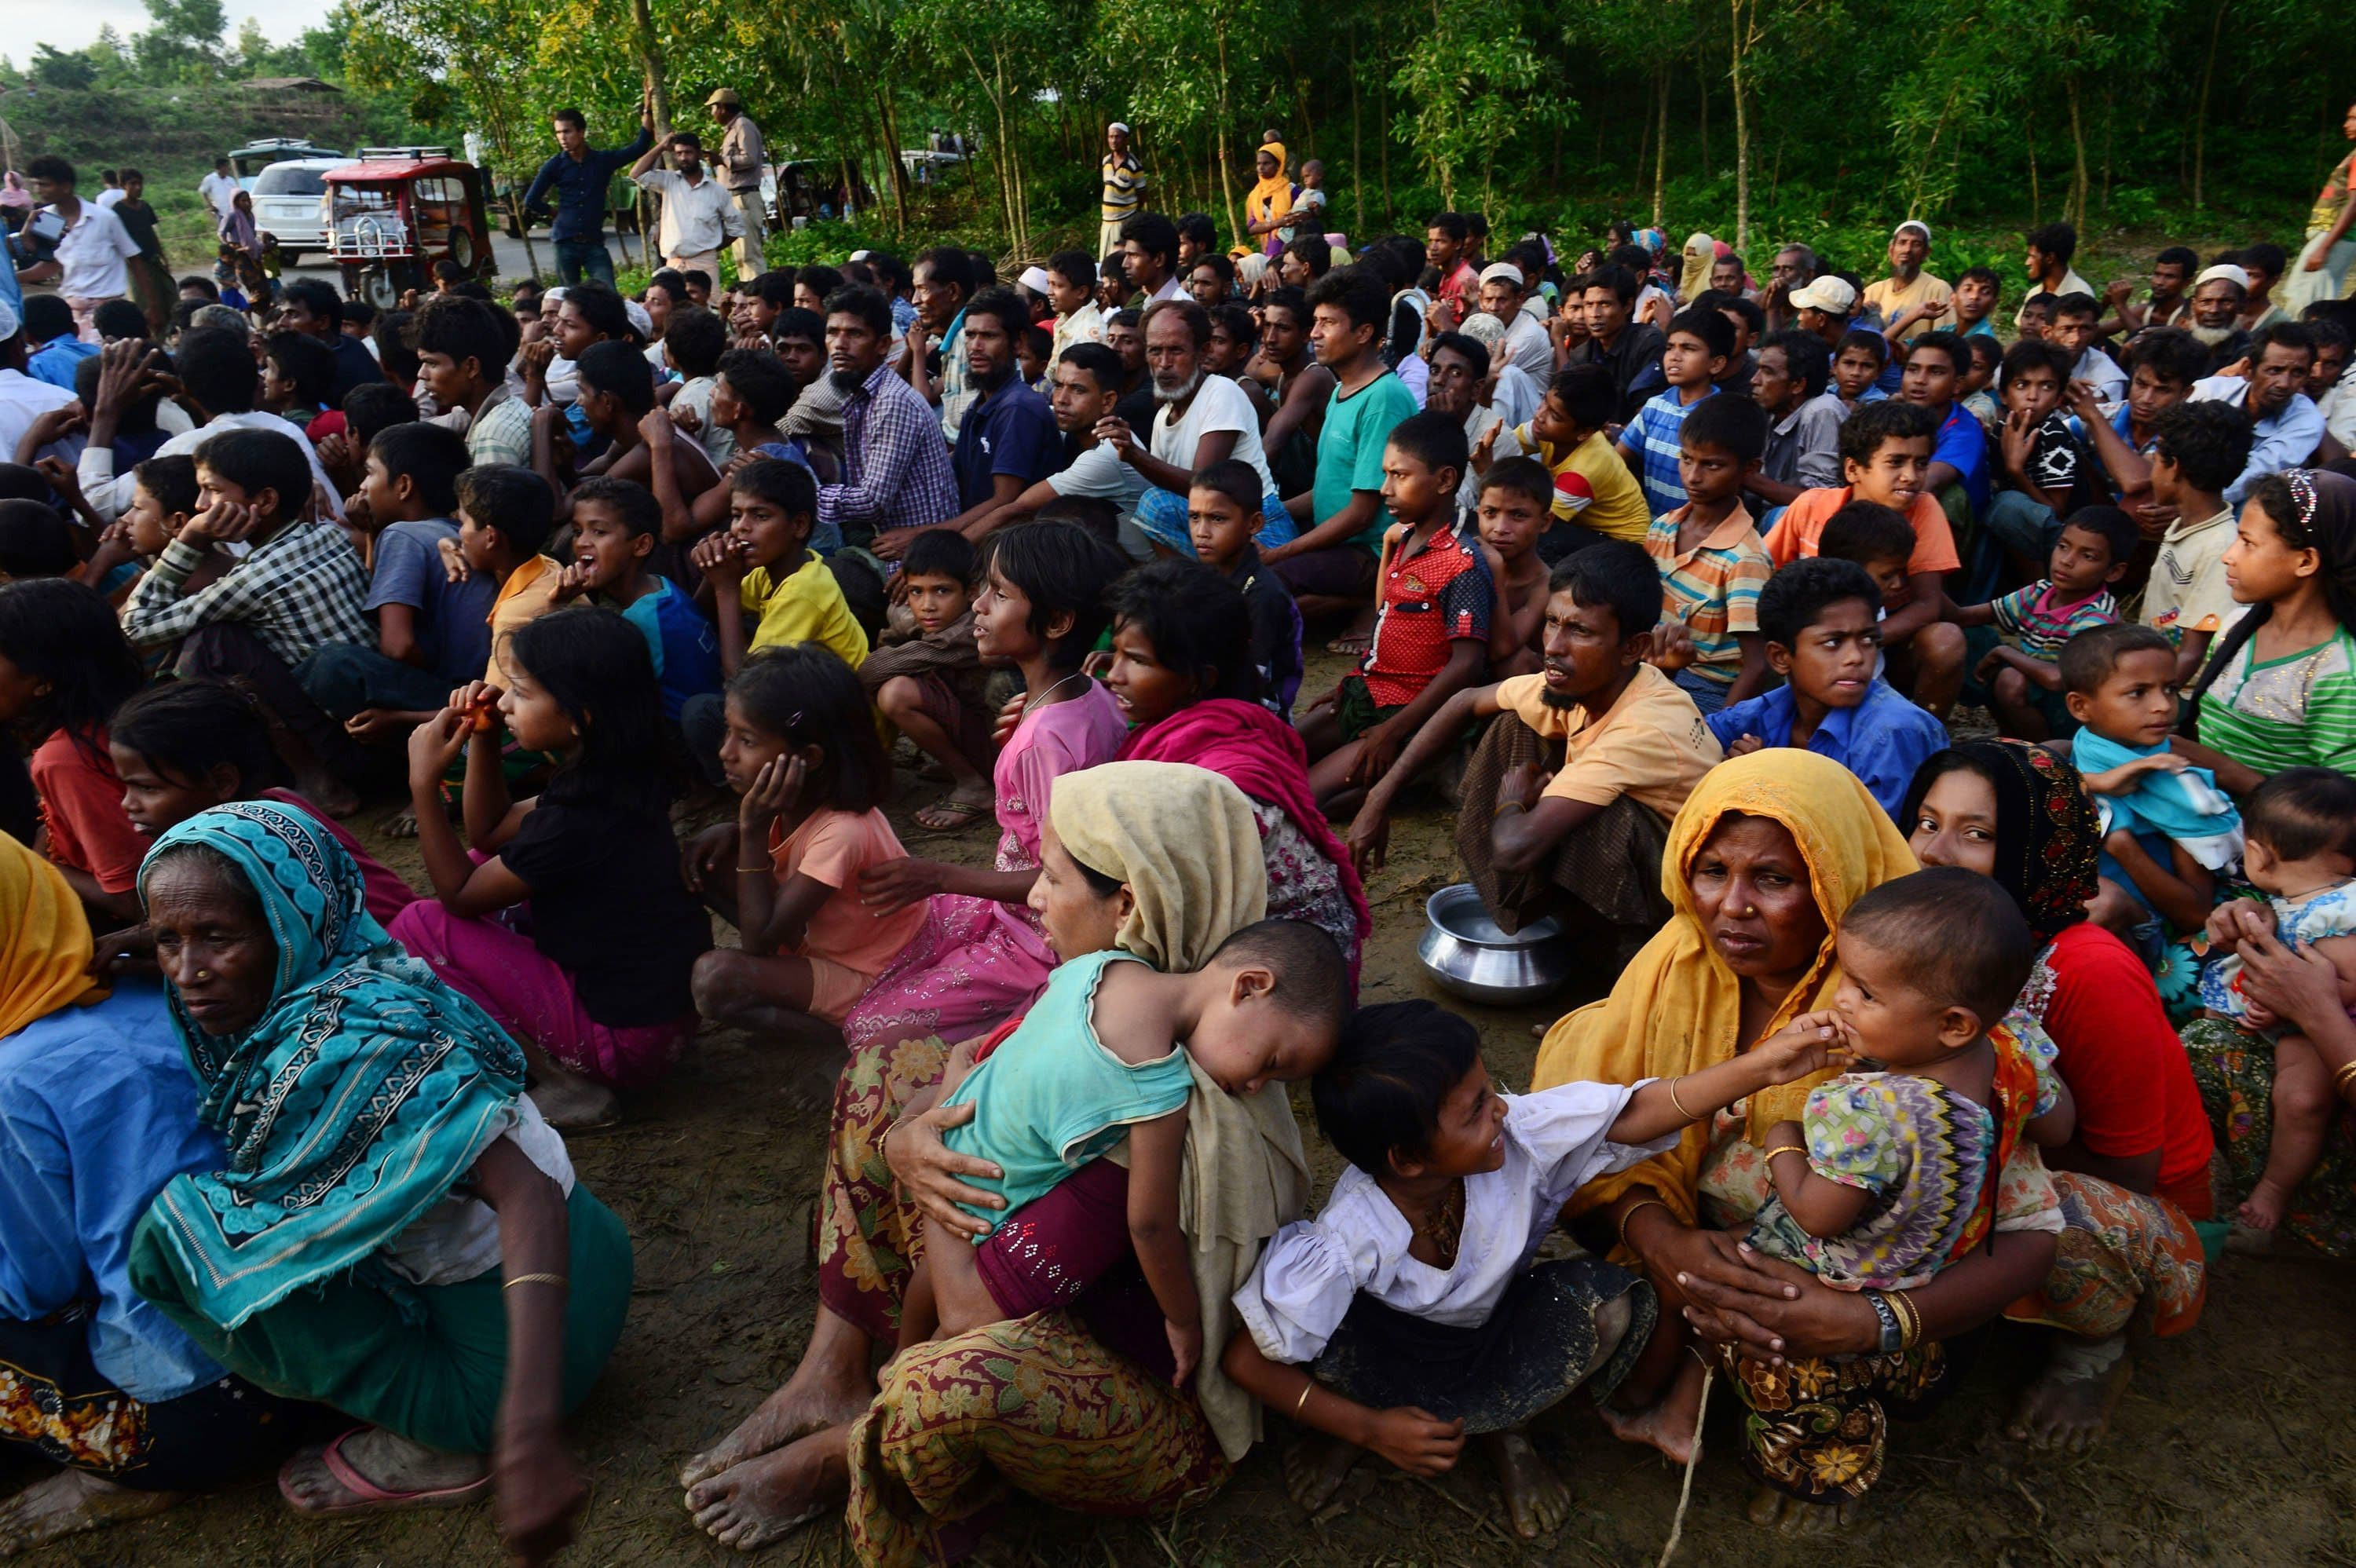 Rohingya exodus from Myanmar rises by 9,000 in 24 hours: UN